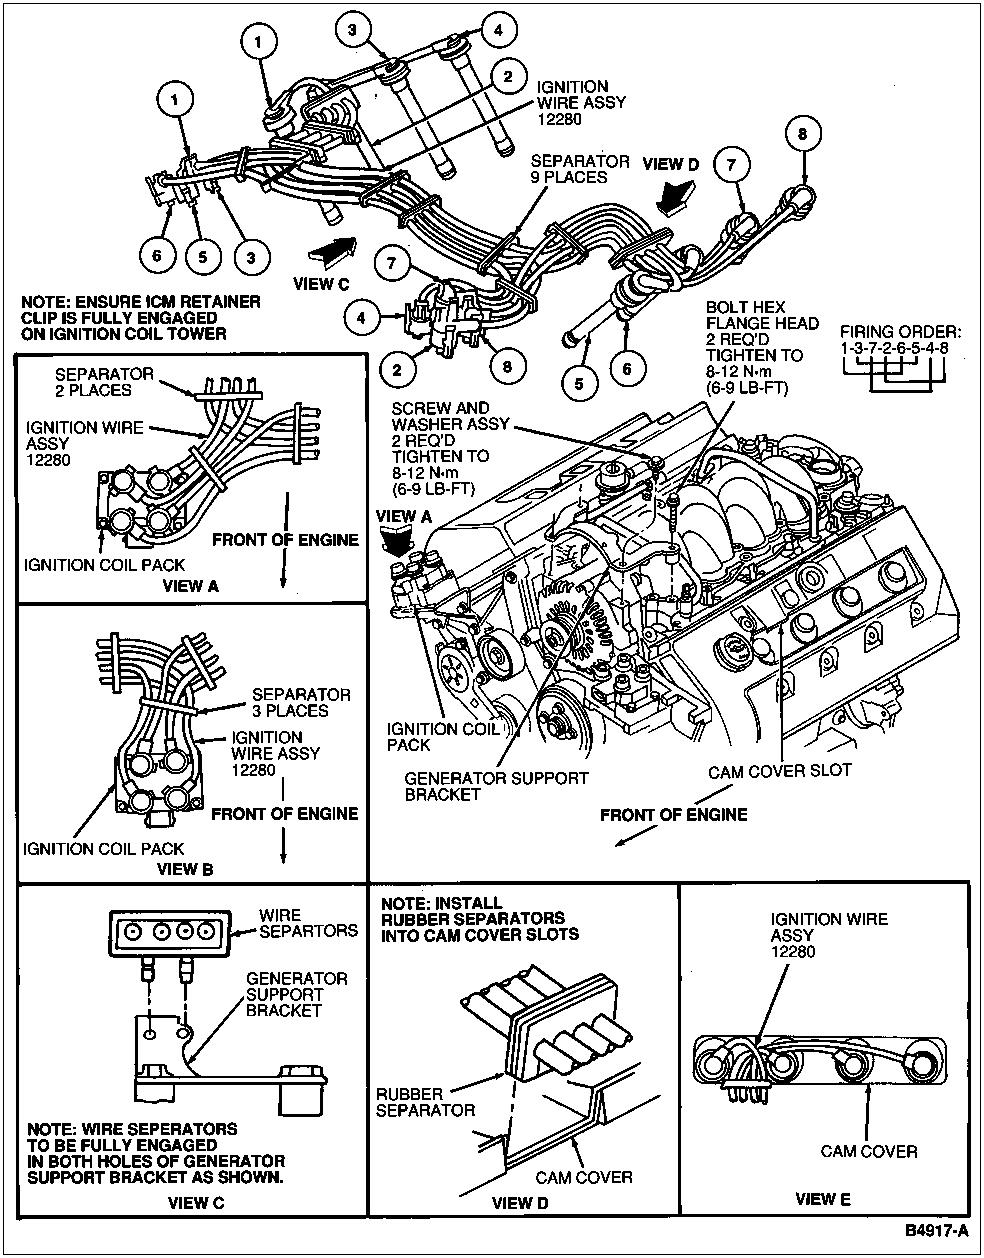 [WRG-3427] 96 Lincoln Continental Engine Diagram